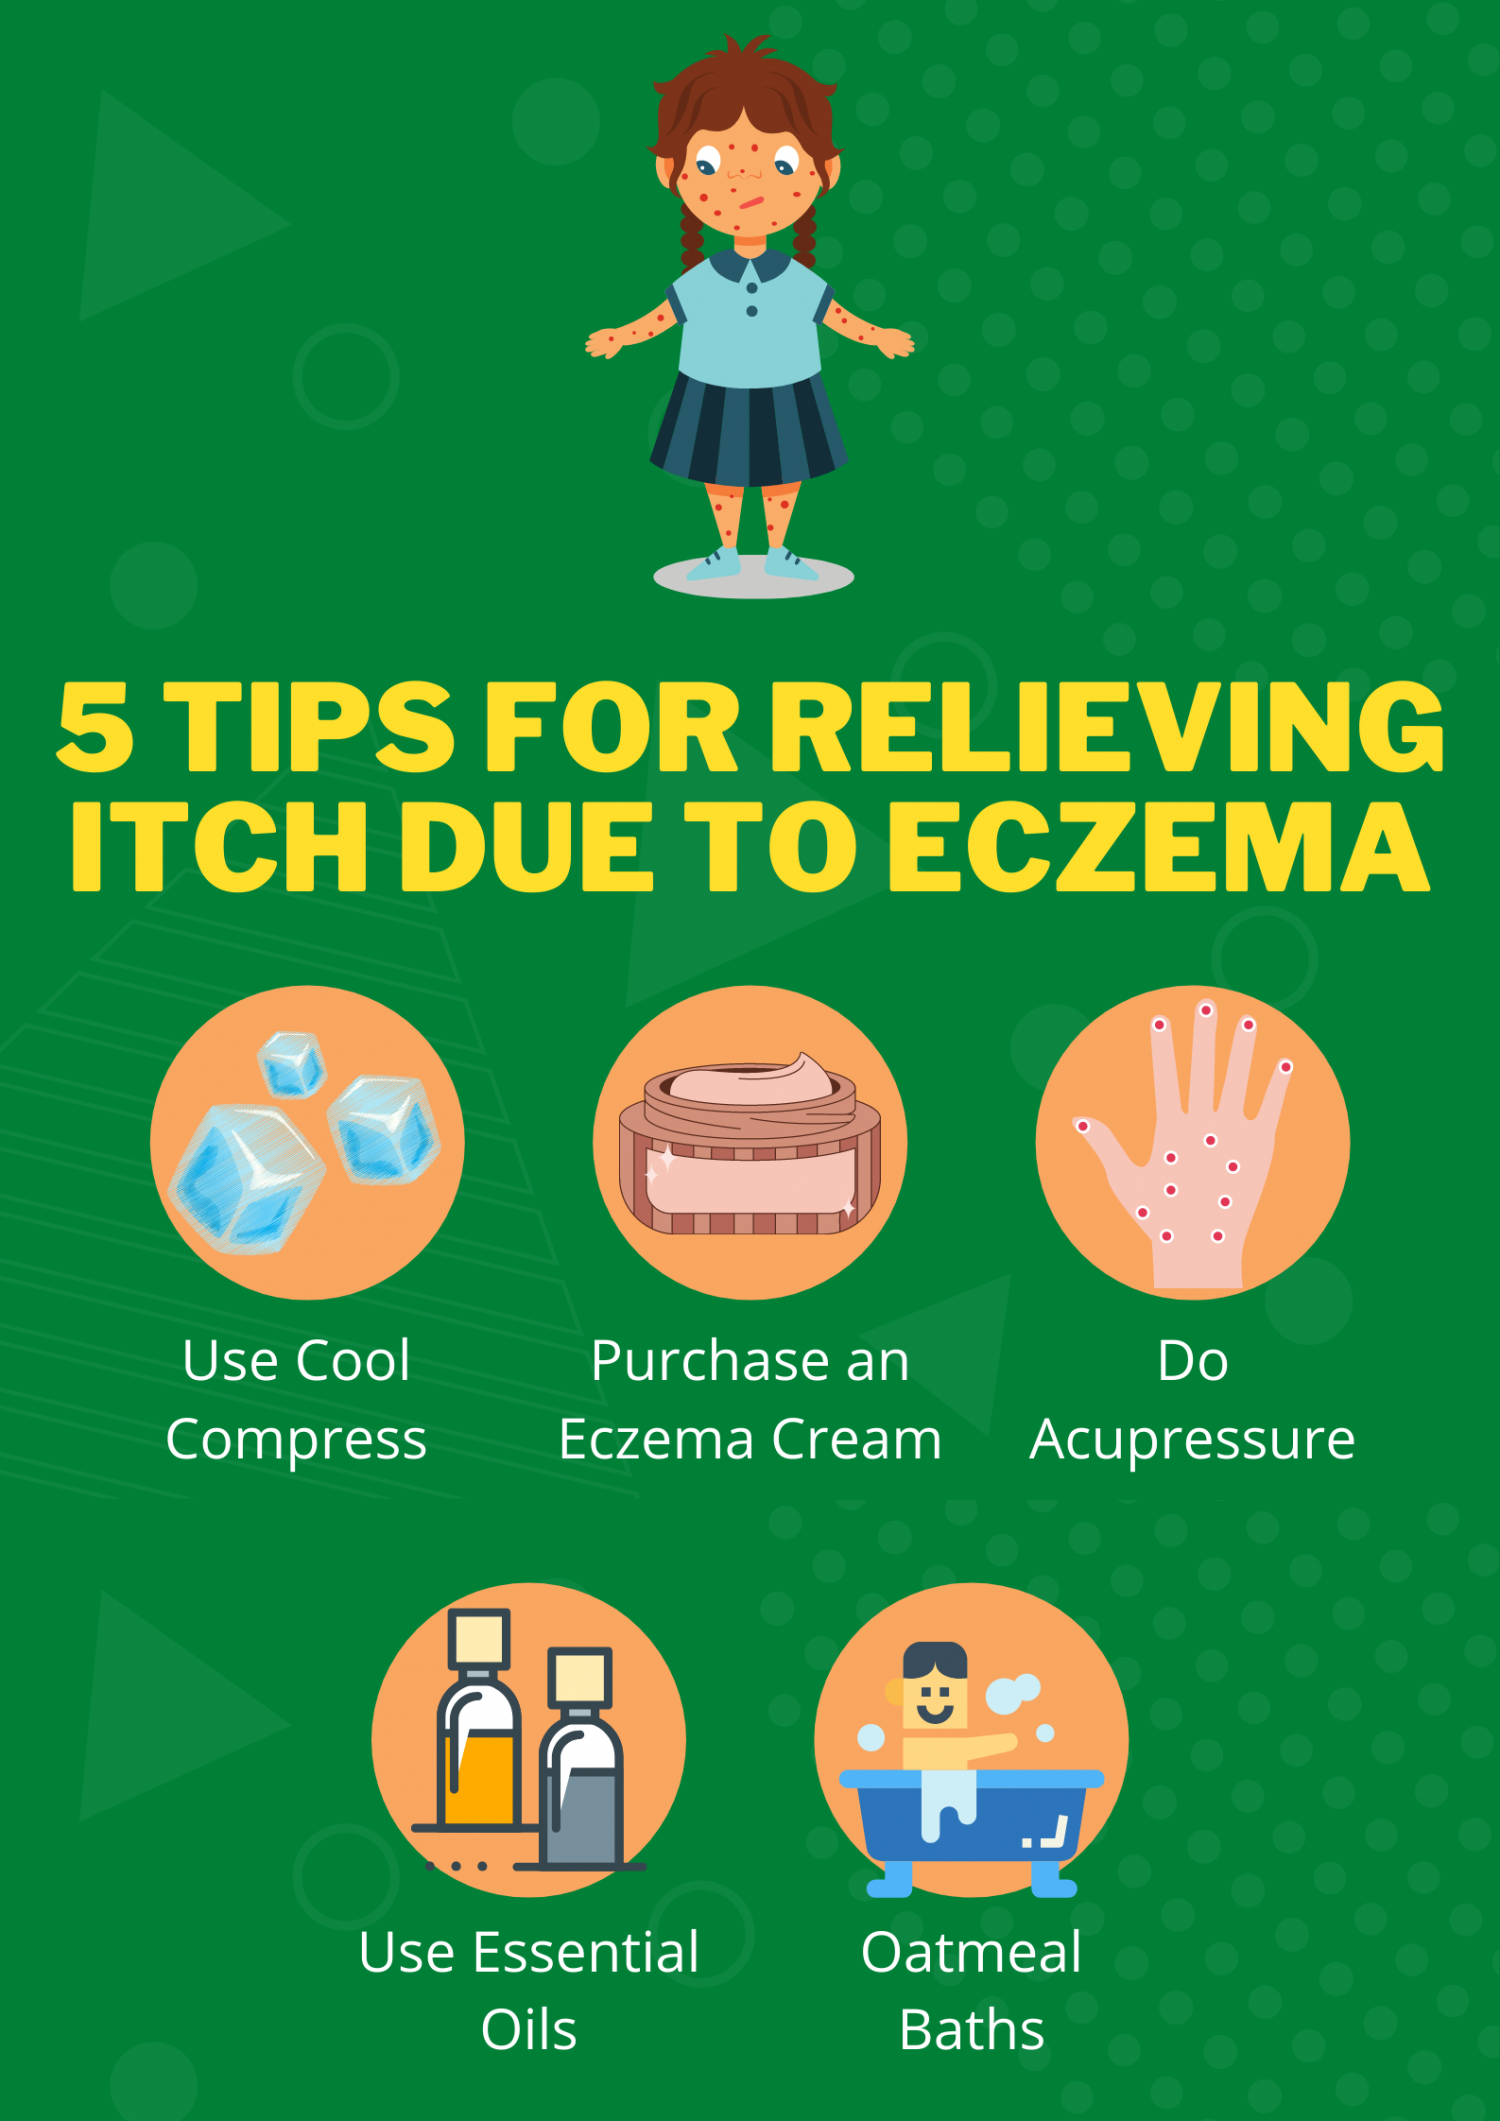 5 Tips for Relieving Itch Due to Eczema Infographic